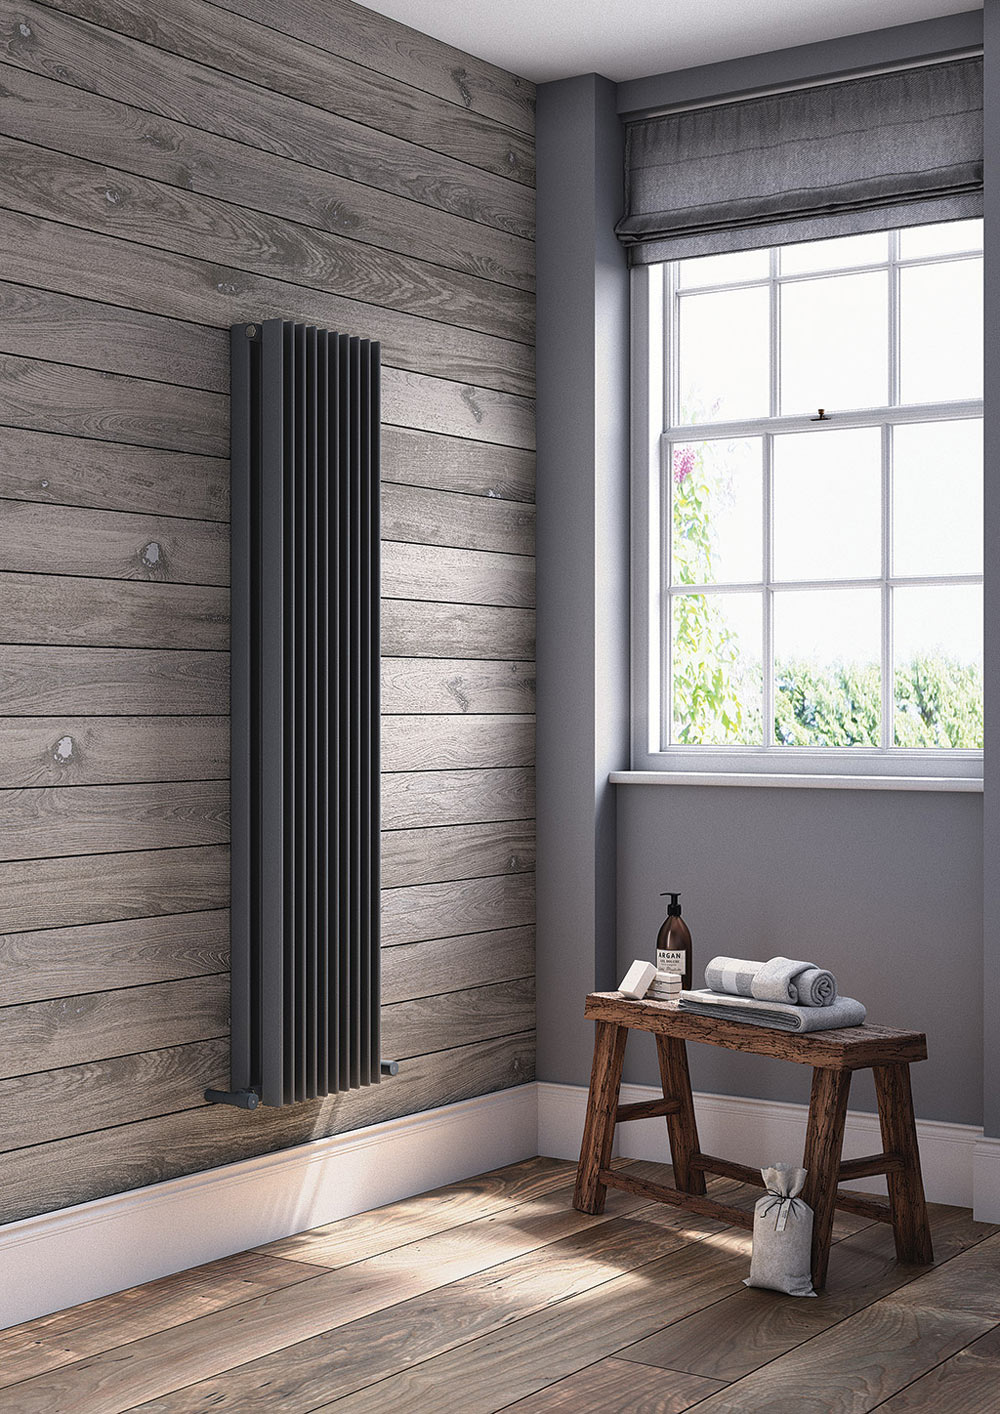 Arezzo Heated Towel Rails Btw Baths Tiles Woodfloors